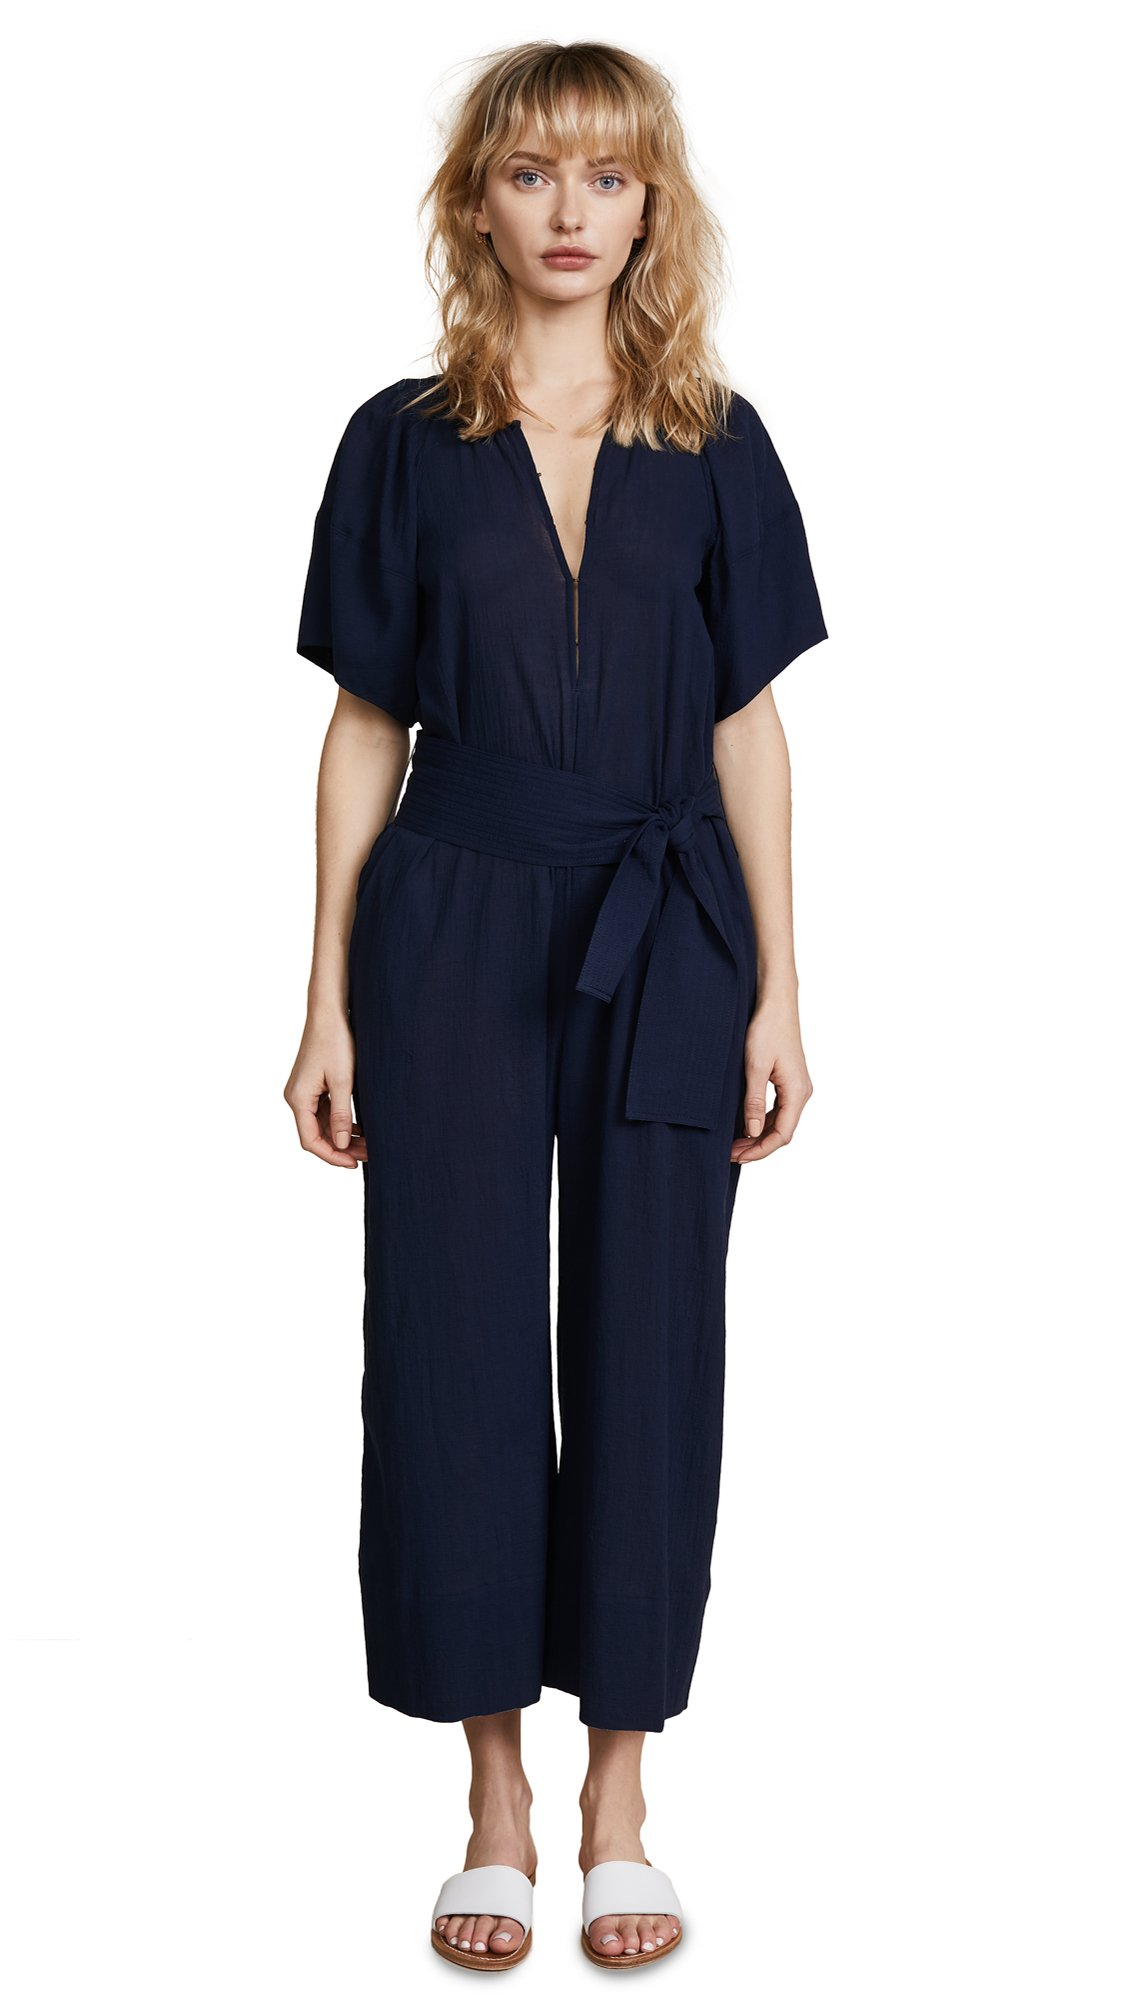 Apiece Apart Women's Soleil Balloon Sleeve Jumpsuit, Navy, 8